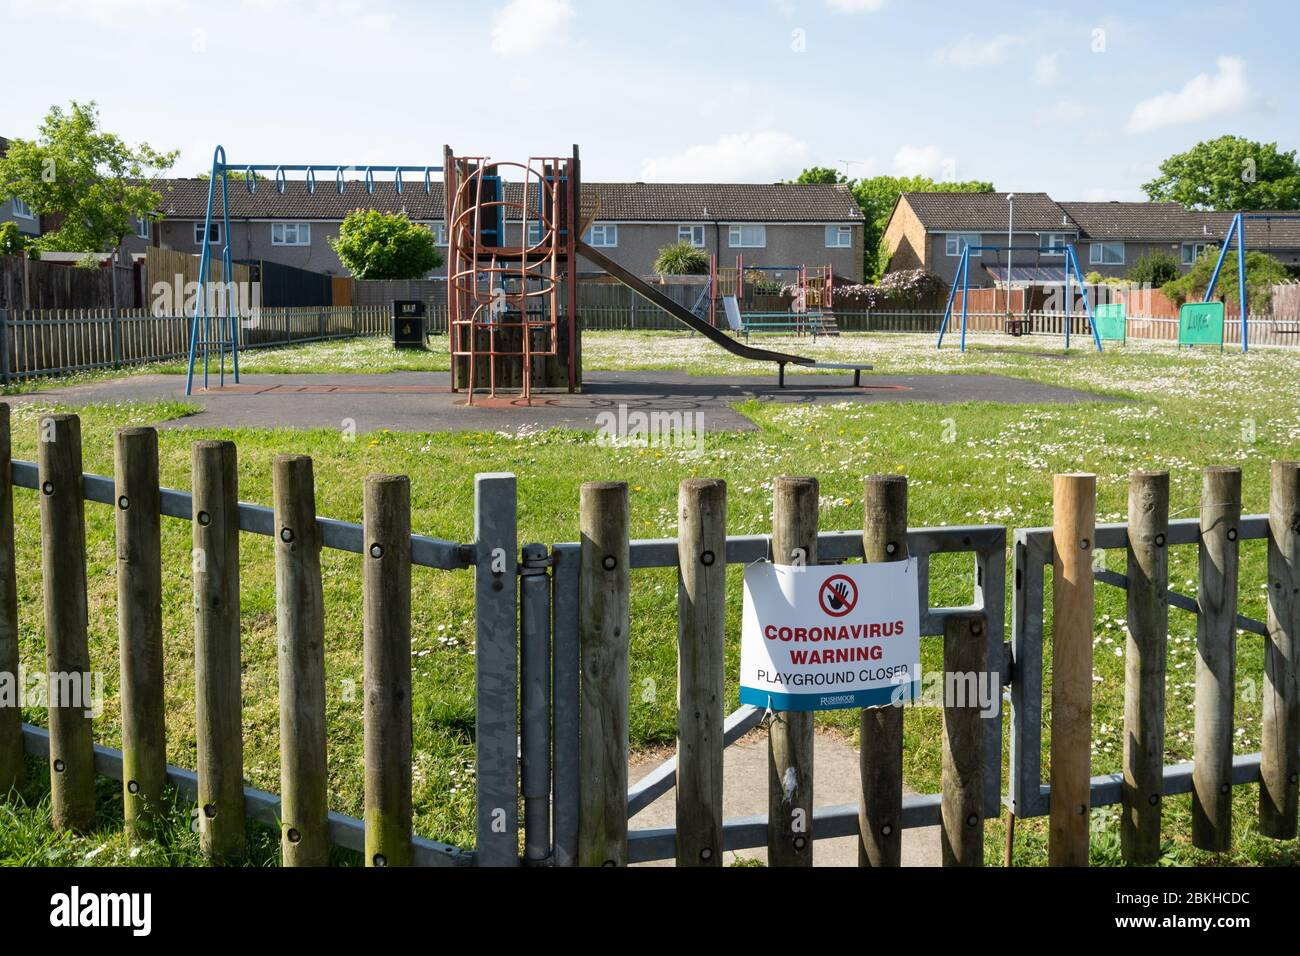 childrens-playground-with-a-closed-sign-due-to-the-coronavirus-covid-19-pandemic-lockdown-in-2020-uk-2BKHCDC.jpg